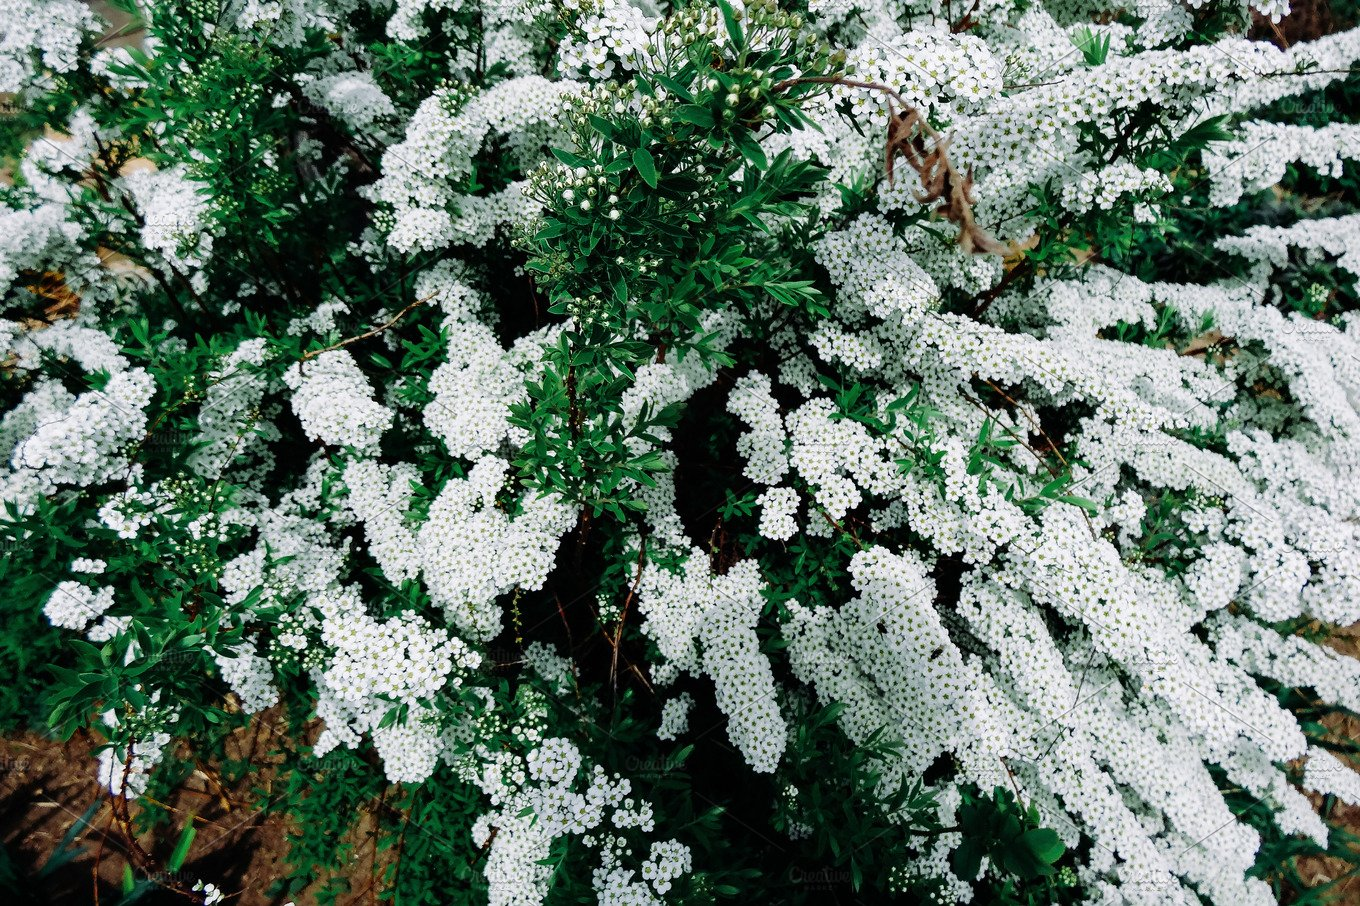 Spiraea alpine meadowsweet spring flower white blossoming shrub spiraea alpine meadowsweet spring flower white blossoming shrub bush of the tiny white flowers nature photos creative market mightylinksfo